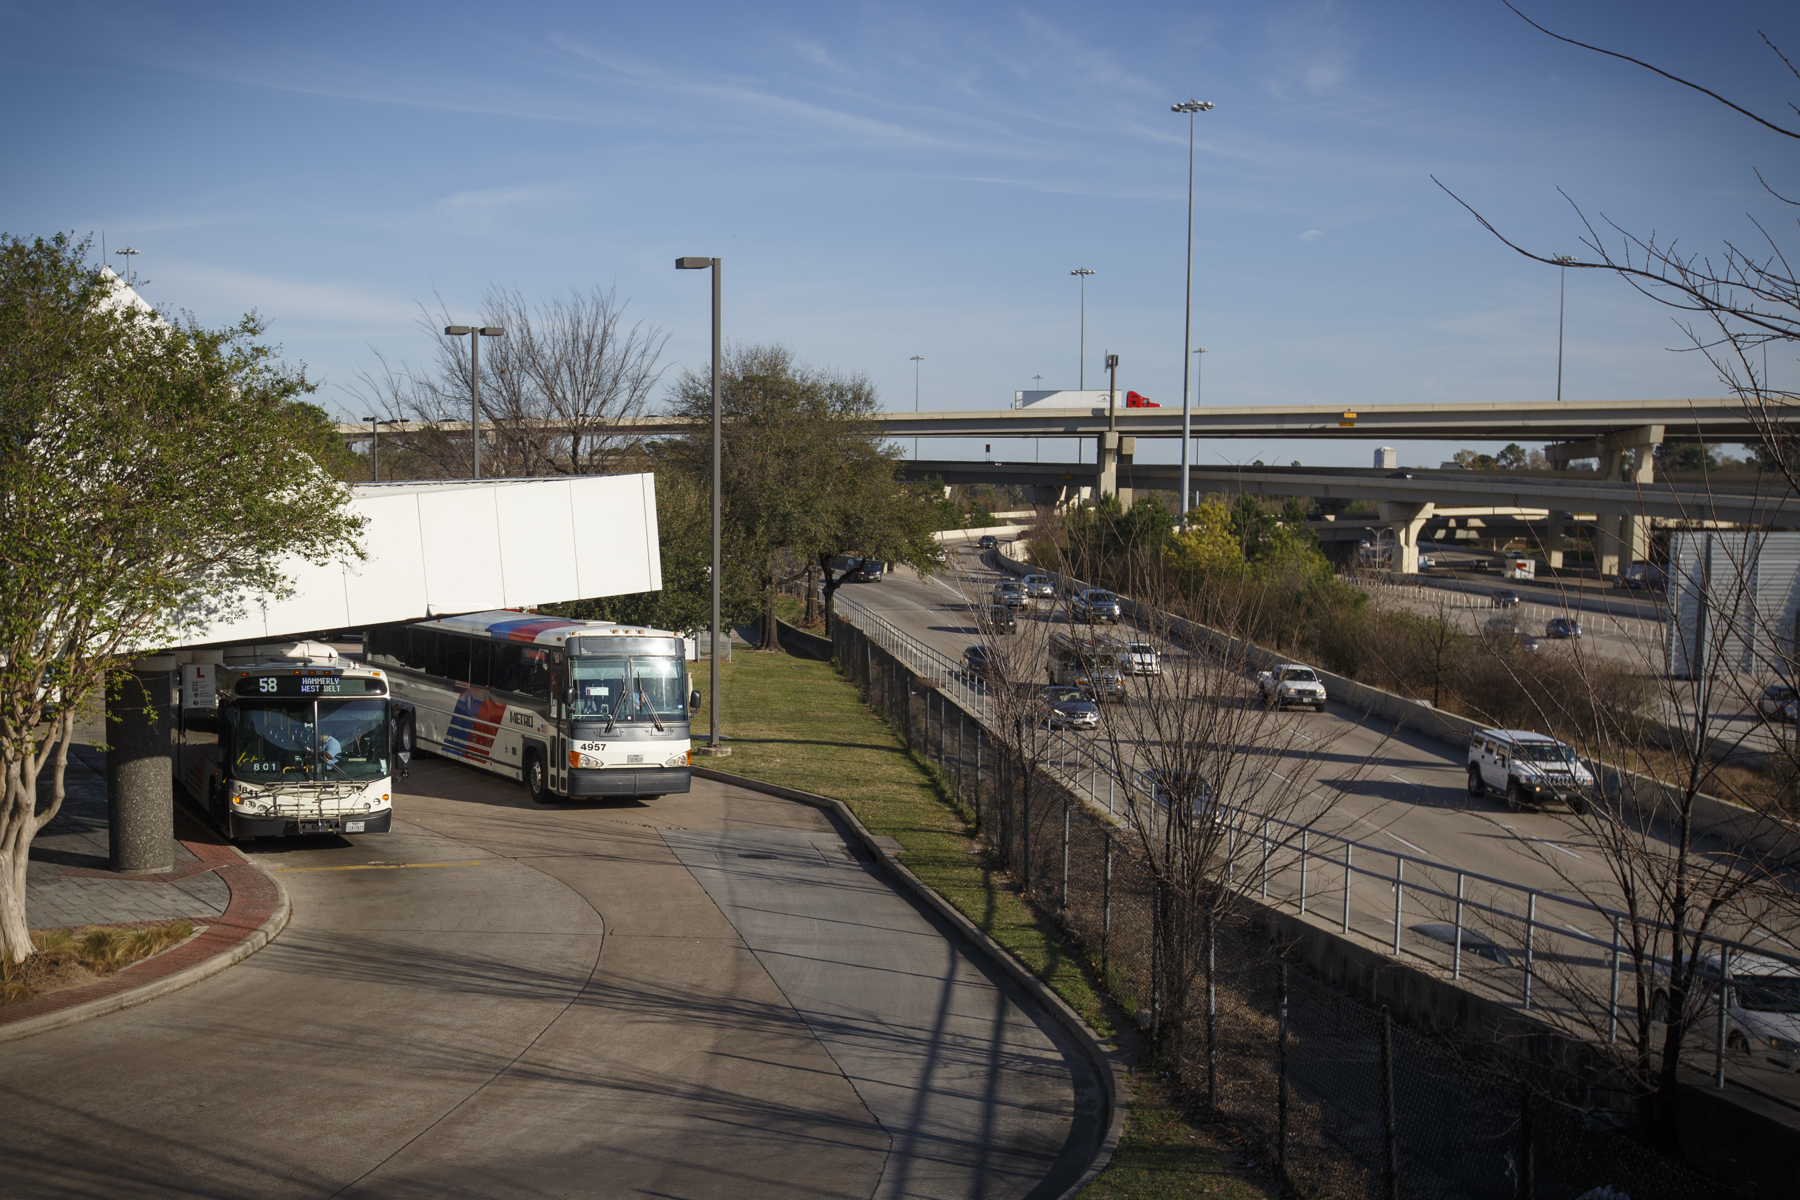 The Northwest Transit Center, a Houston park-and-ride where several bus stops converge, and a possible location for the proposed high-speed rail line from Dallas, on February 16, 2017.